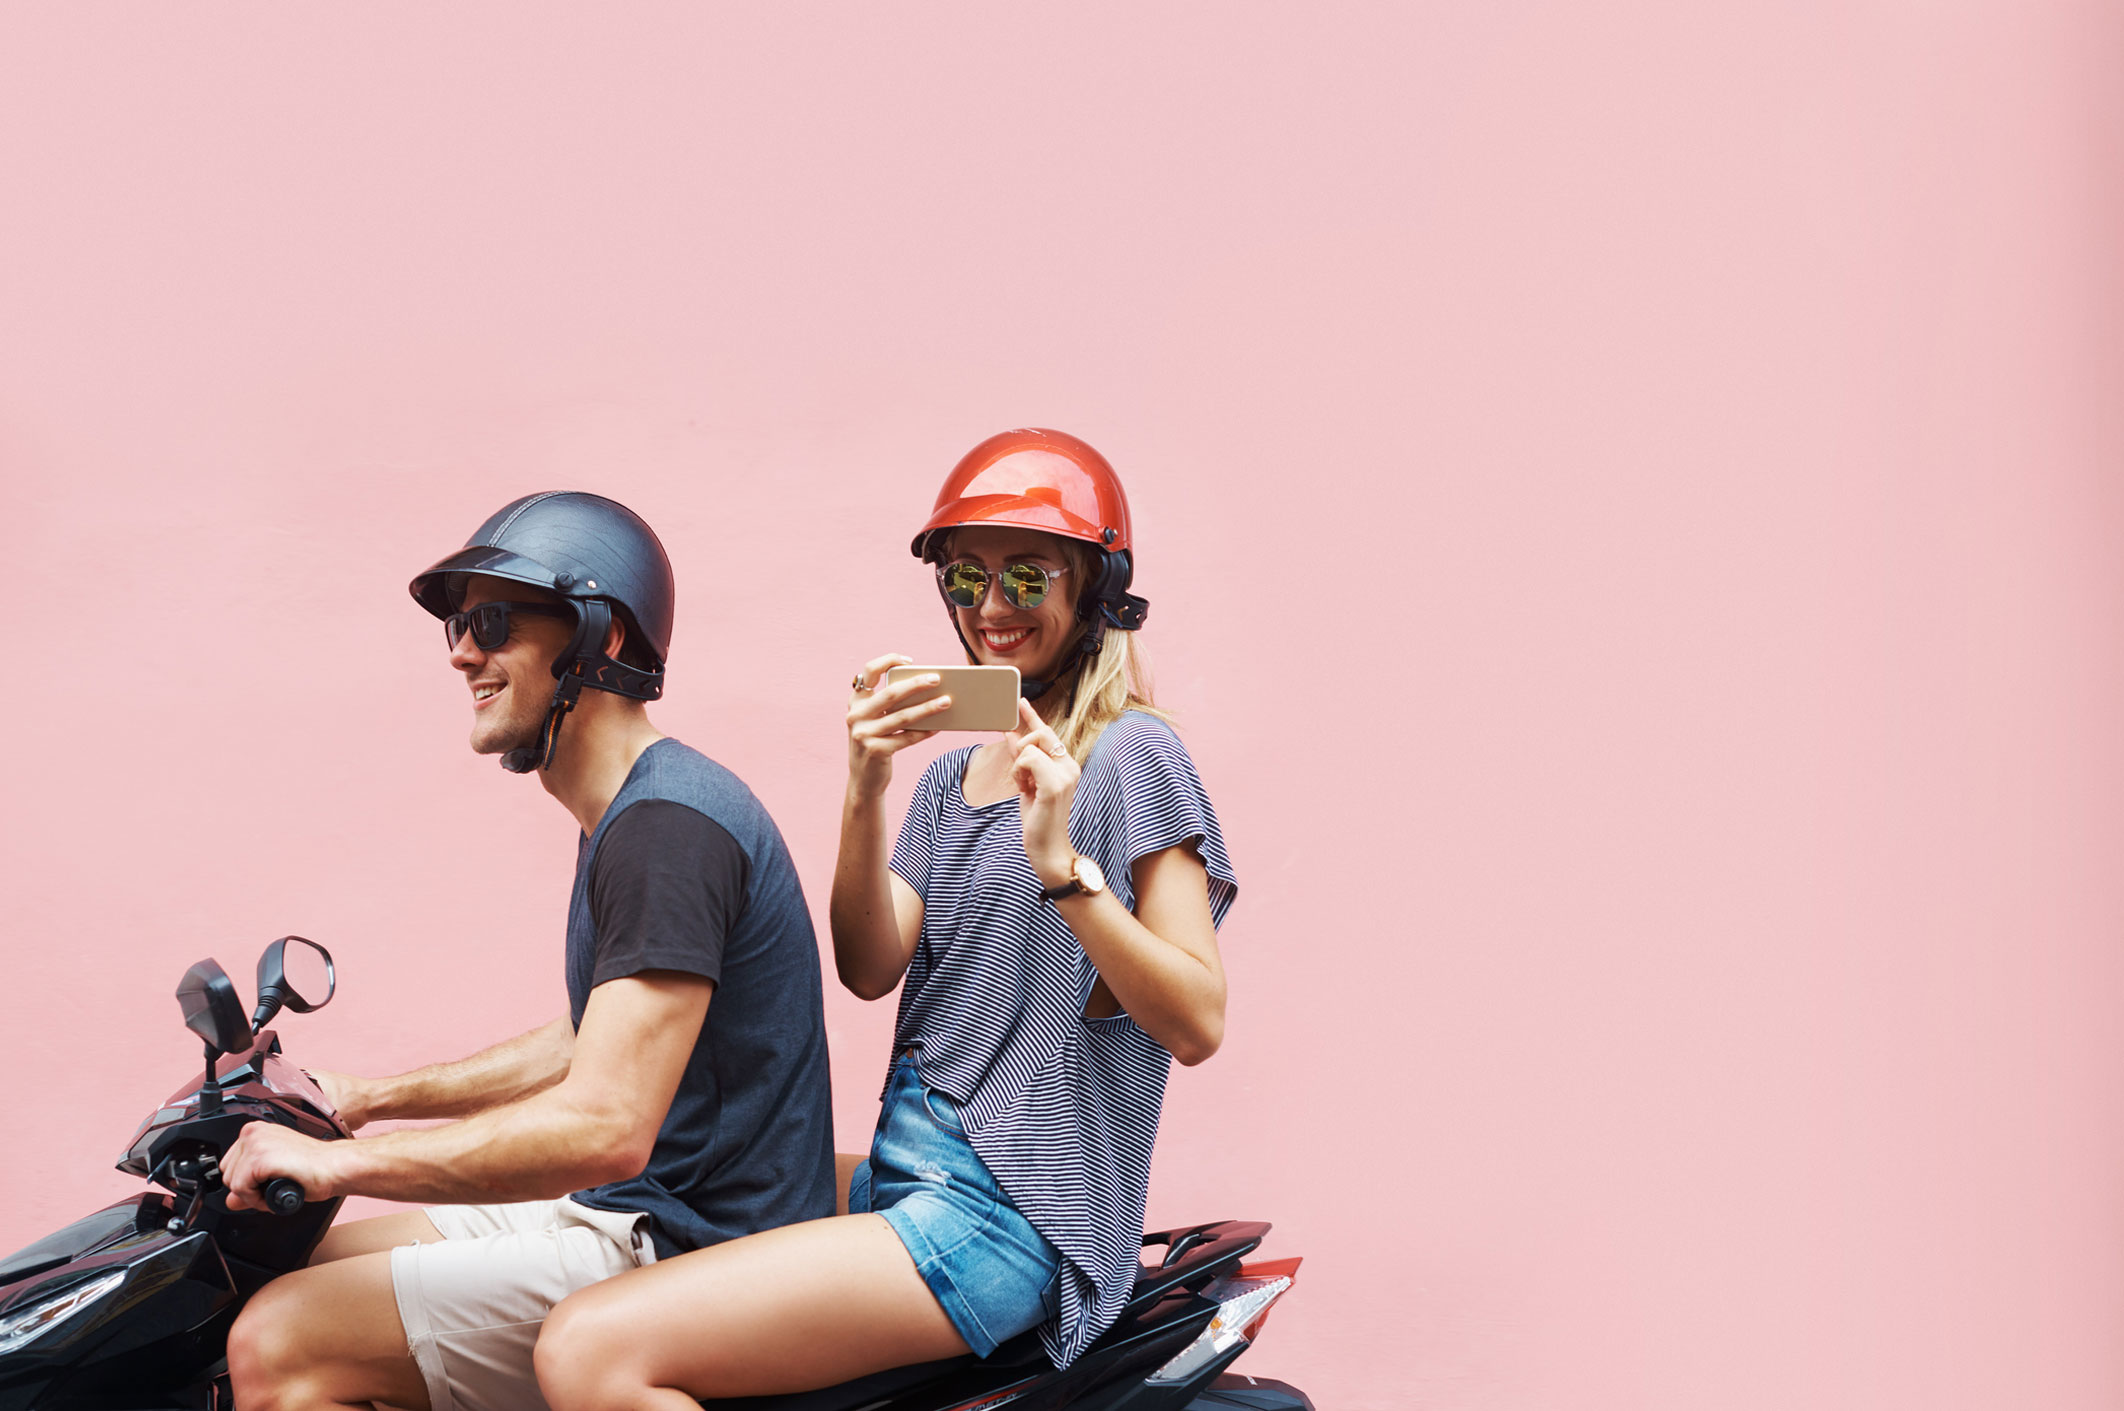 couple on scooter travelling pink background